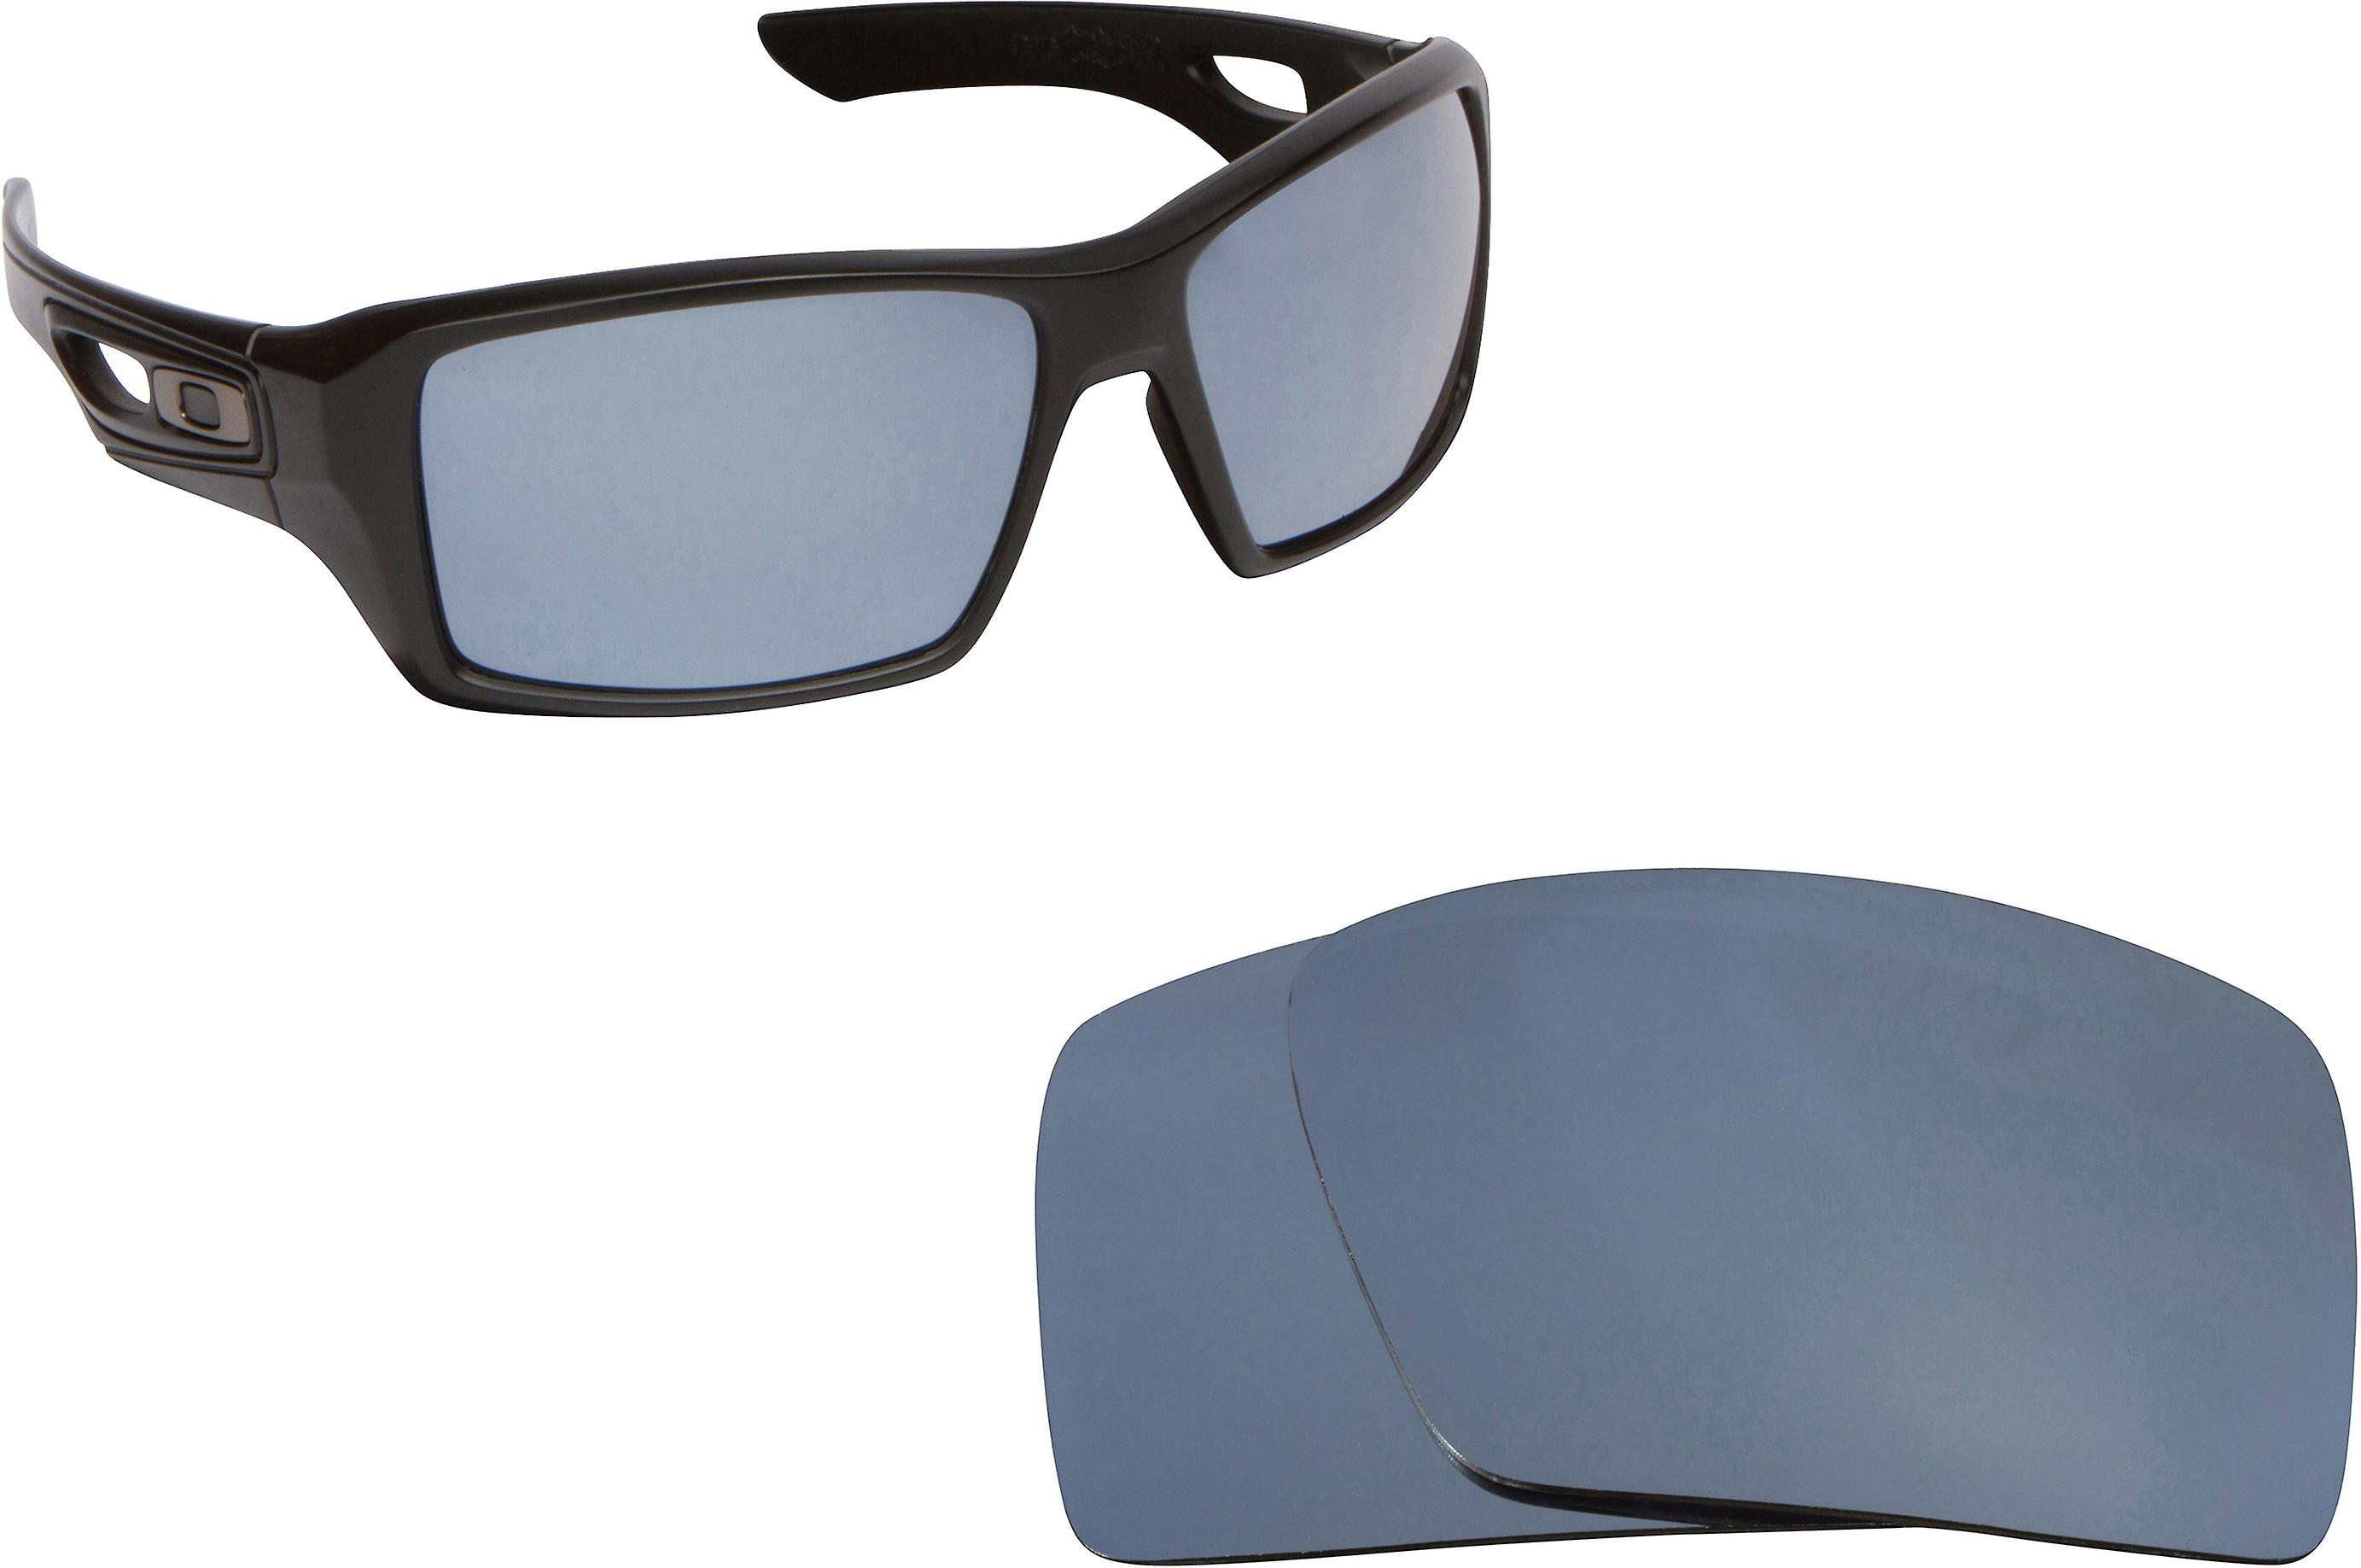 035ee95705 Eyepatch 2 Replacement Lenses Silver Mirror by SEEK fits OAKLEY Sunglasses